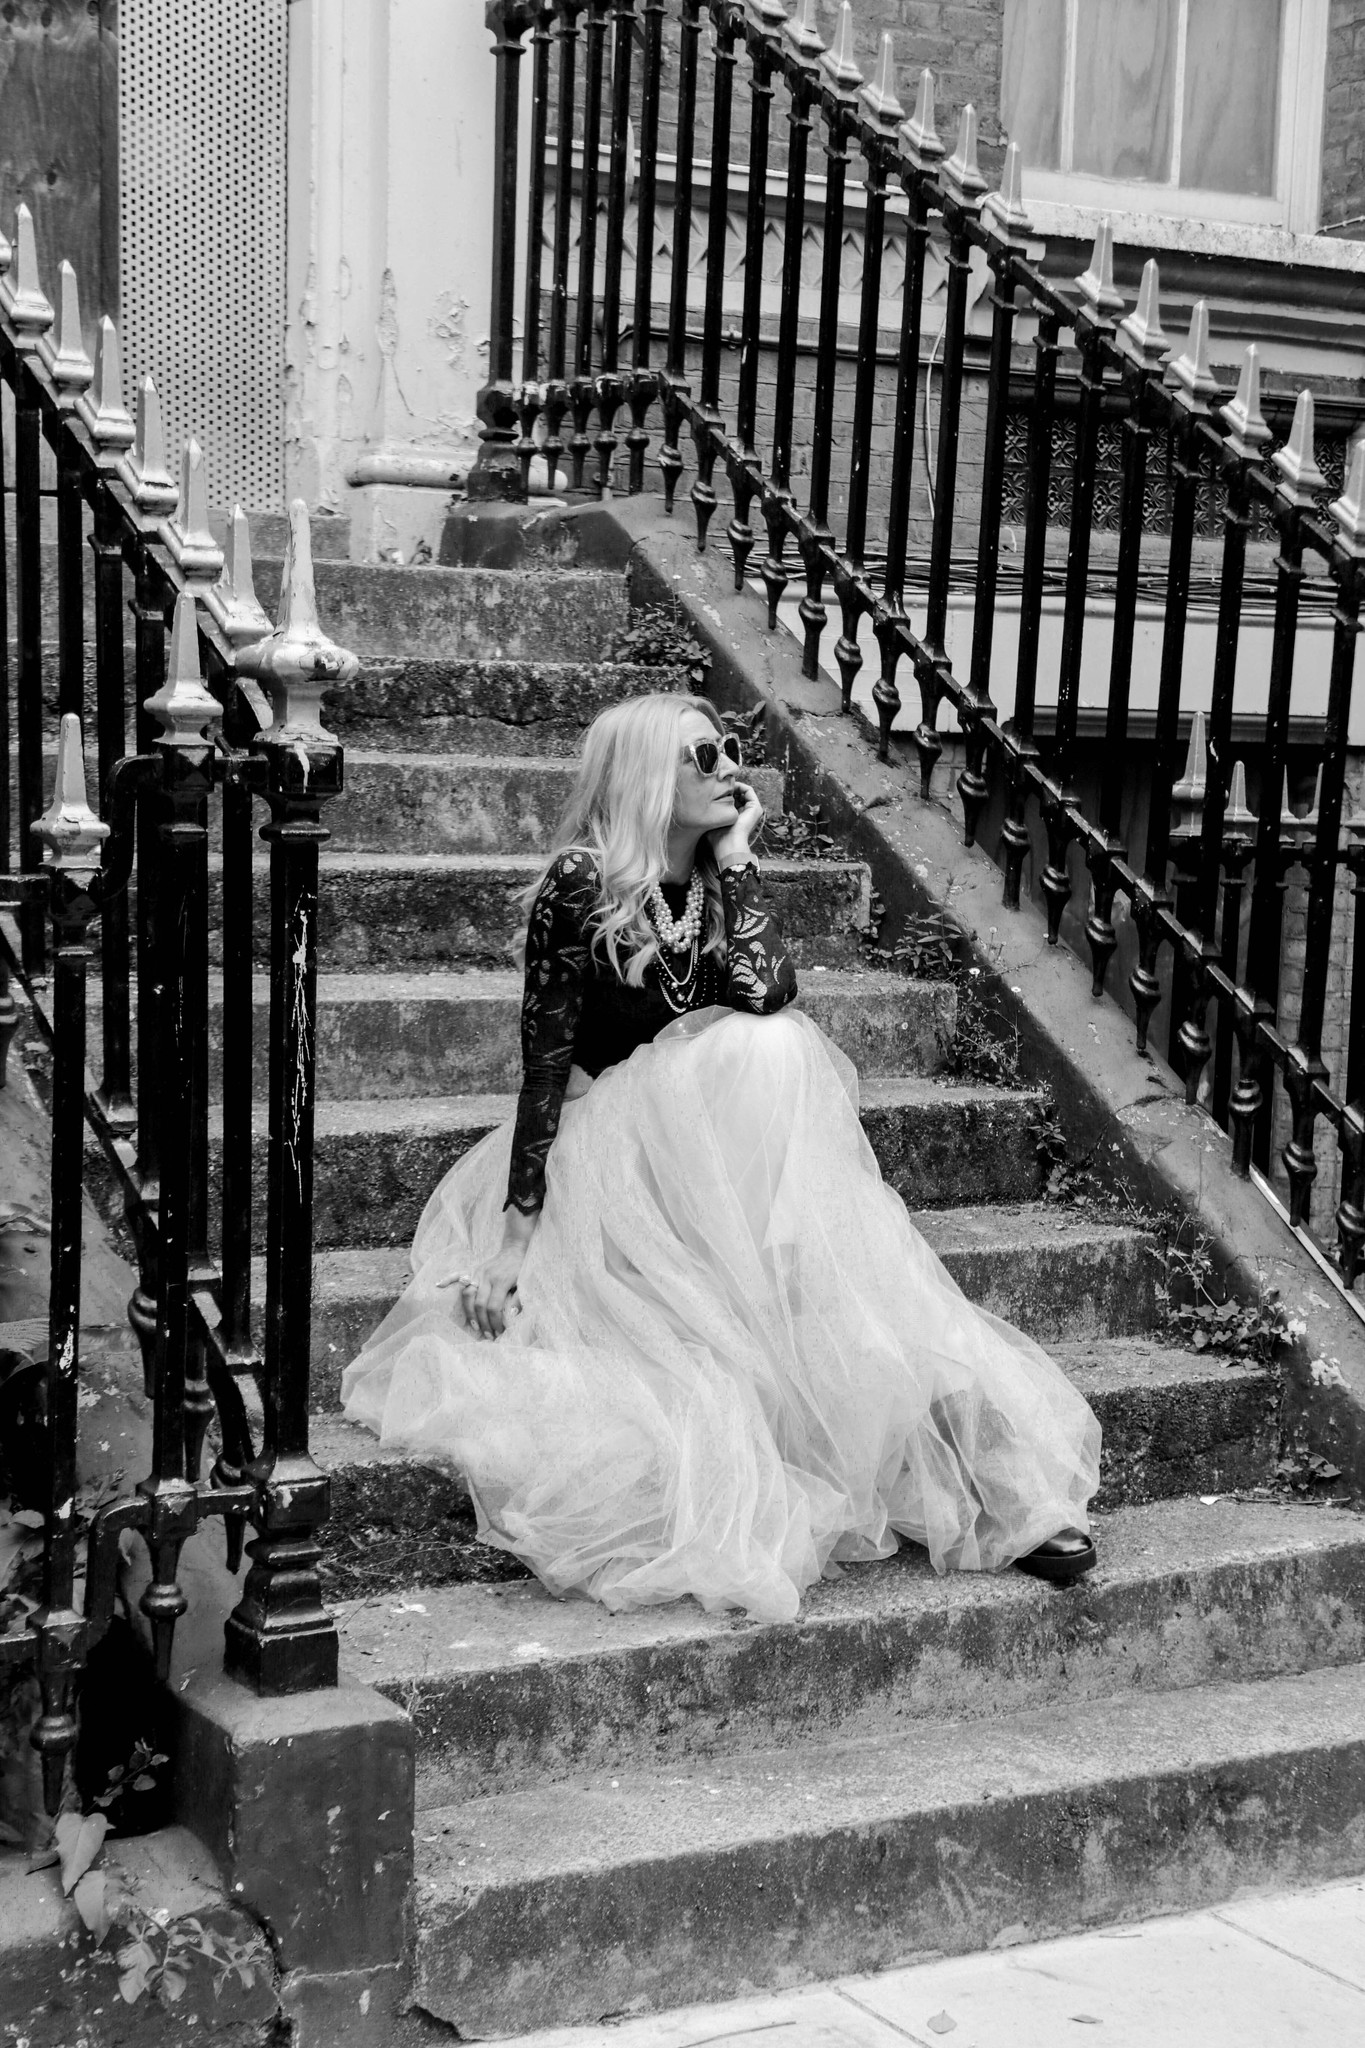 Giles Caldicott Photography: Catherine Summers AKA Not Dressed As Lamb   Wearing: cropped, long sleeve black lace top, pearl-effect square sunglasses, nude tulle maxi skirt, black lace-up boots   Sitting on the steps leading up to a boarded-up abandoned London town house